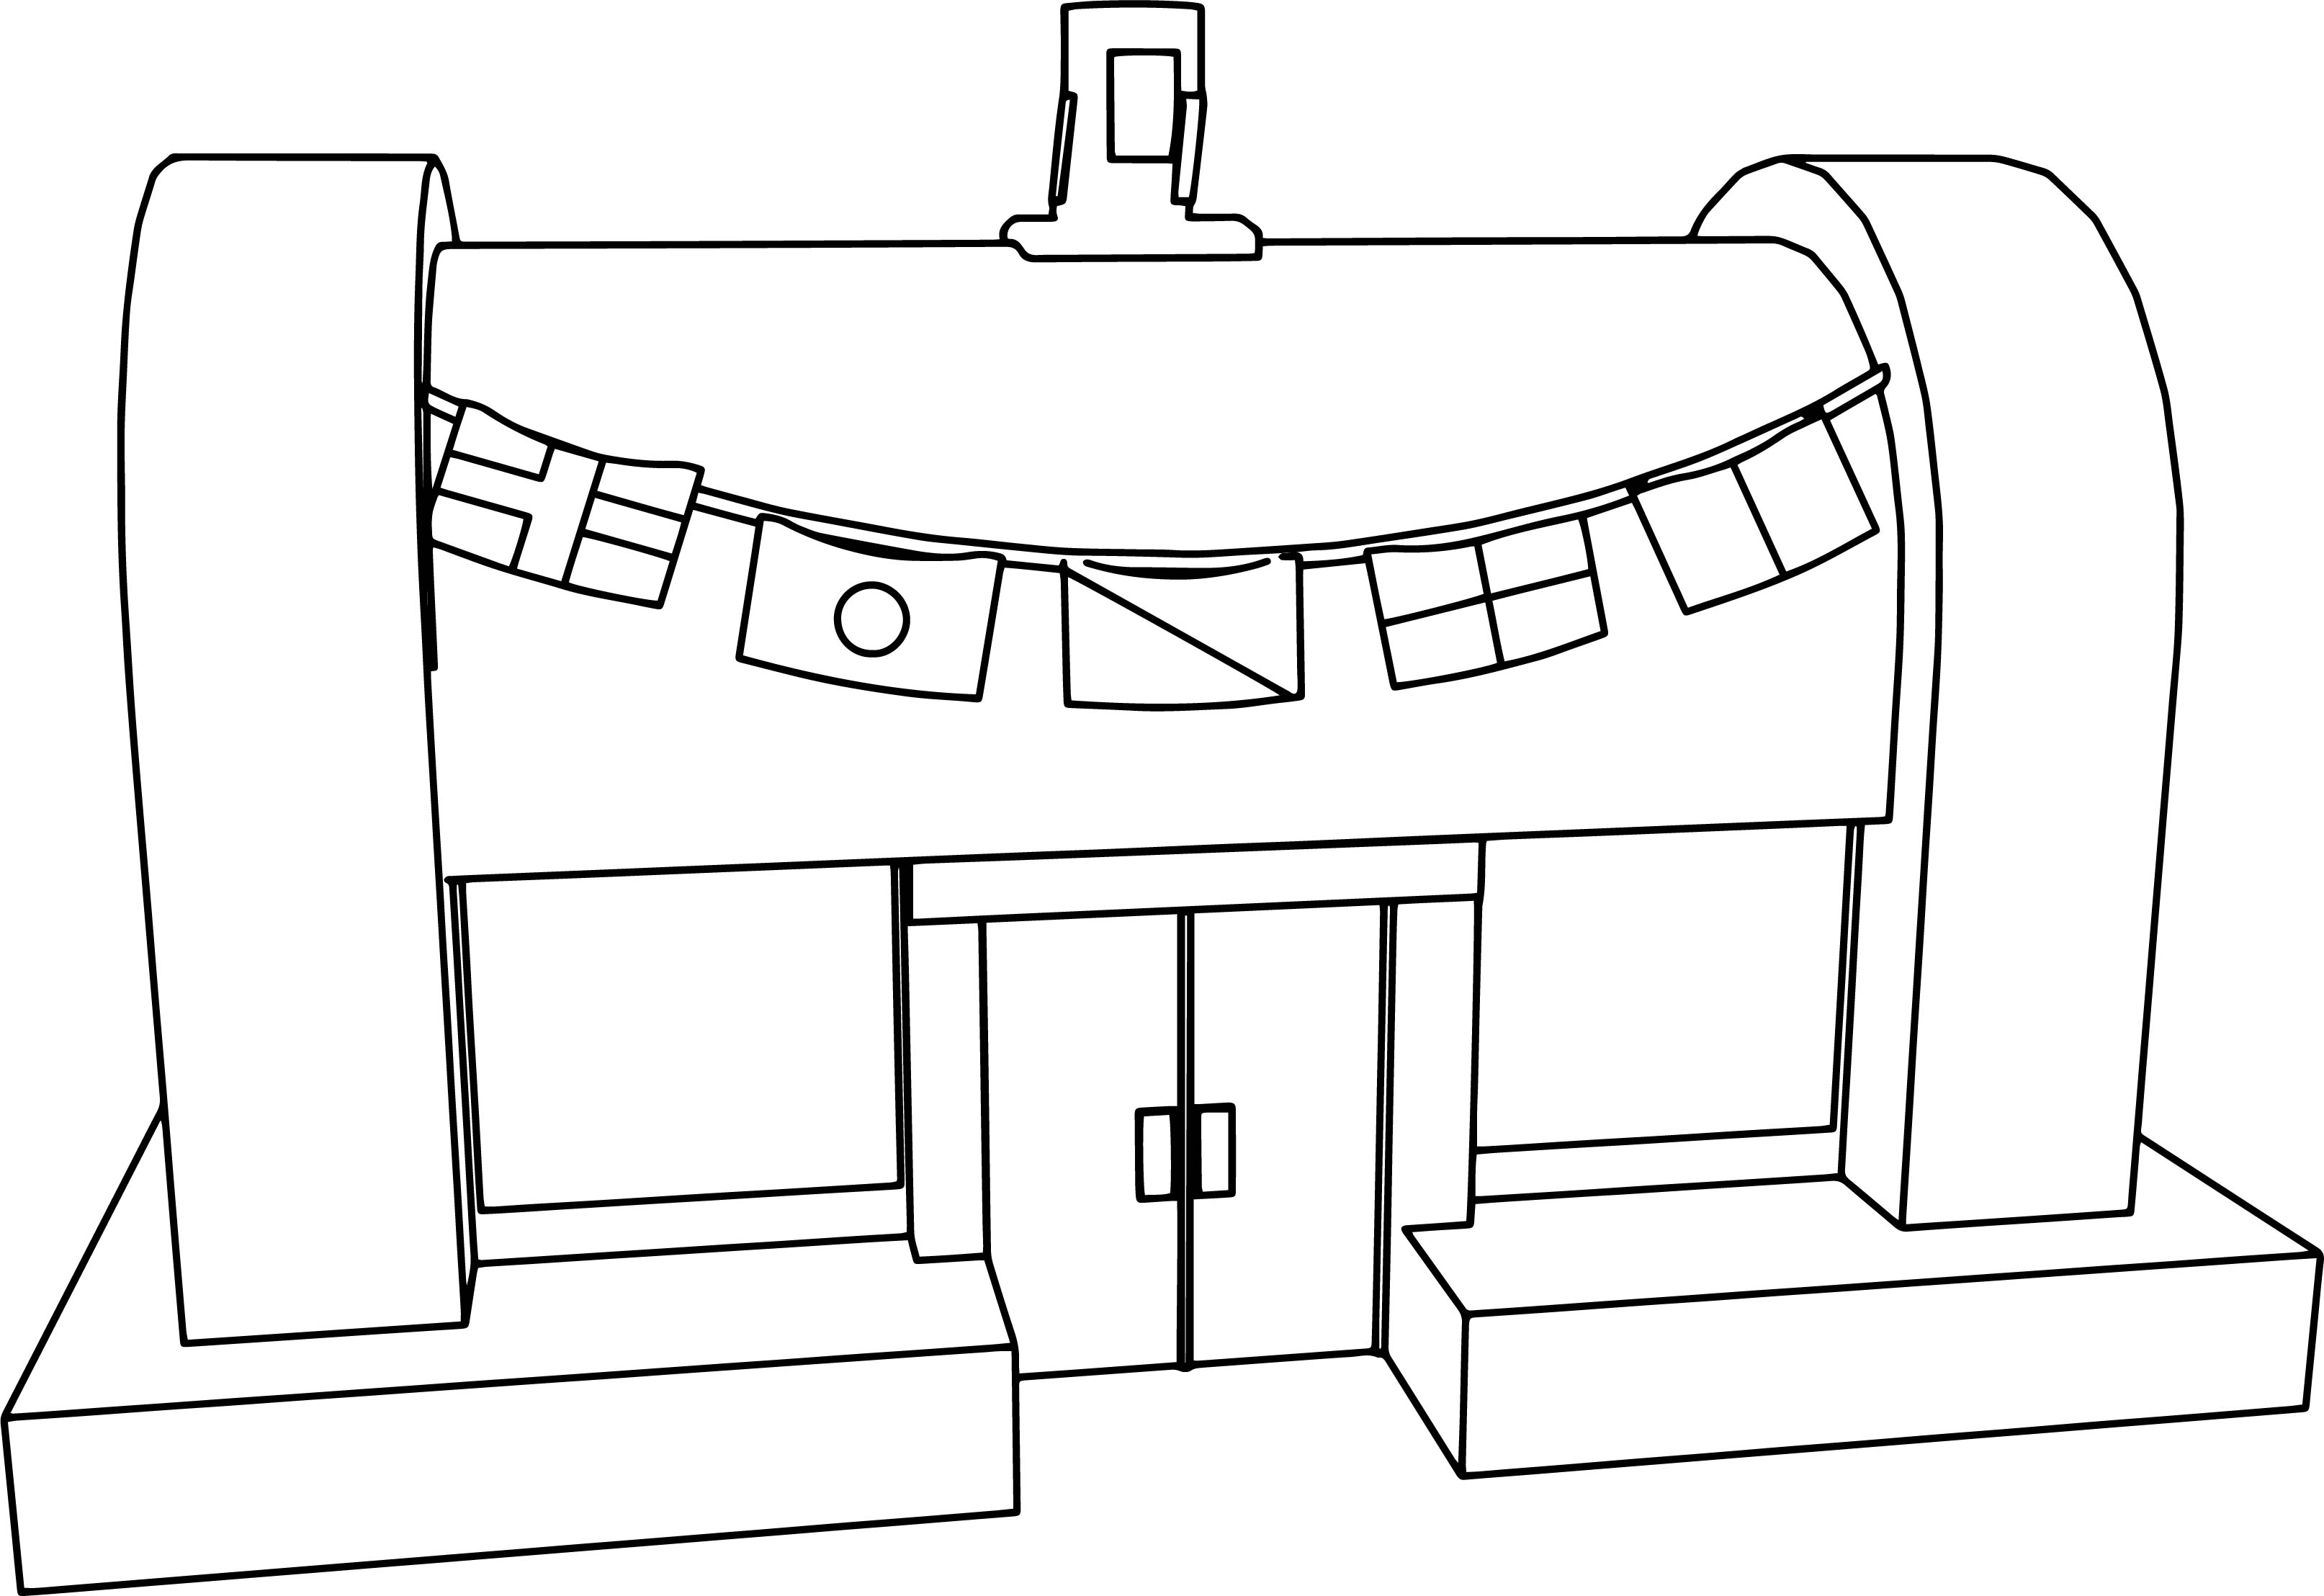 Krusty krab coloring page for Krusty krab coloring pages